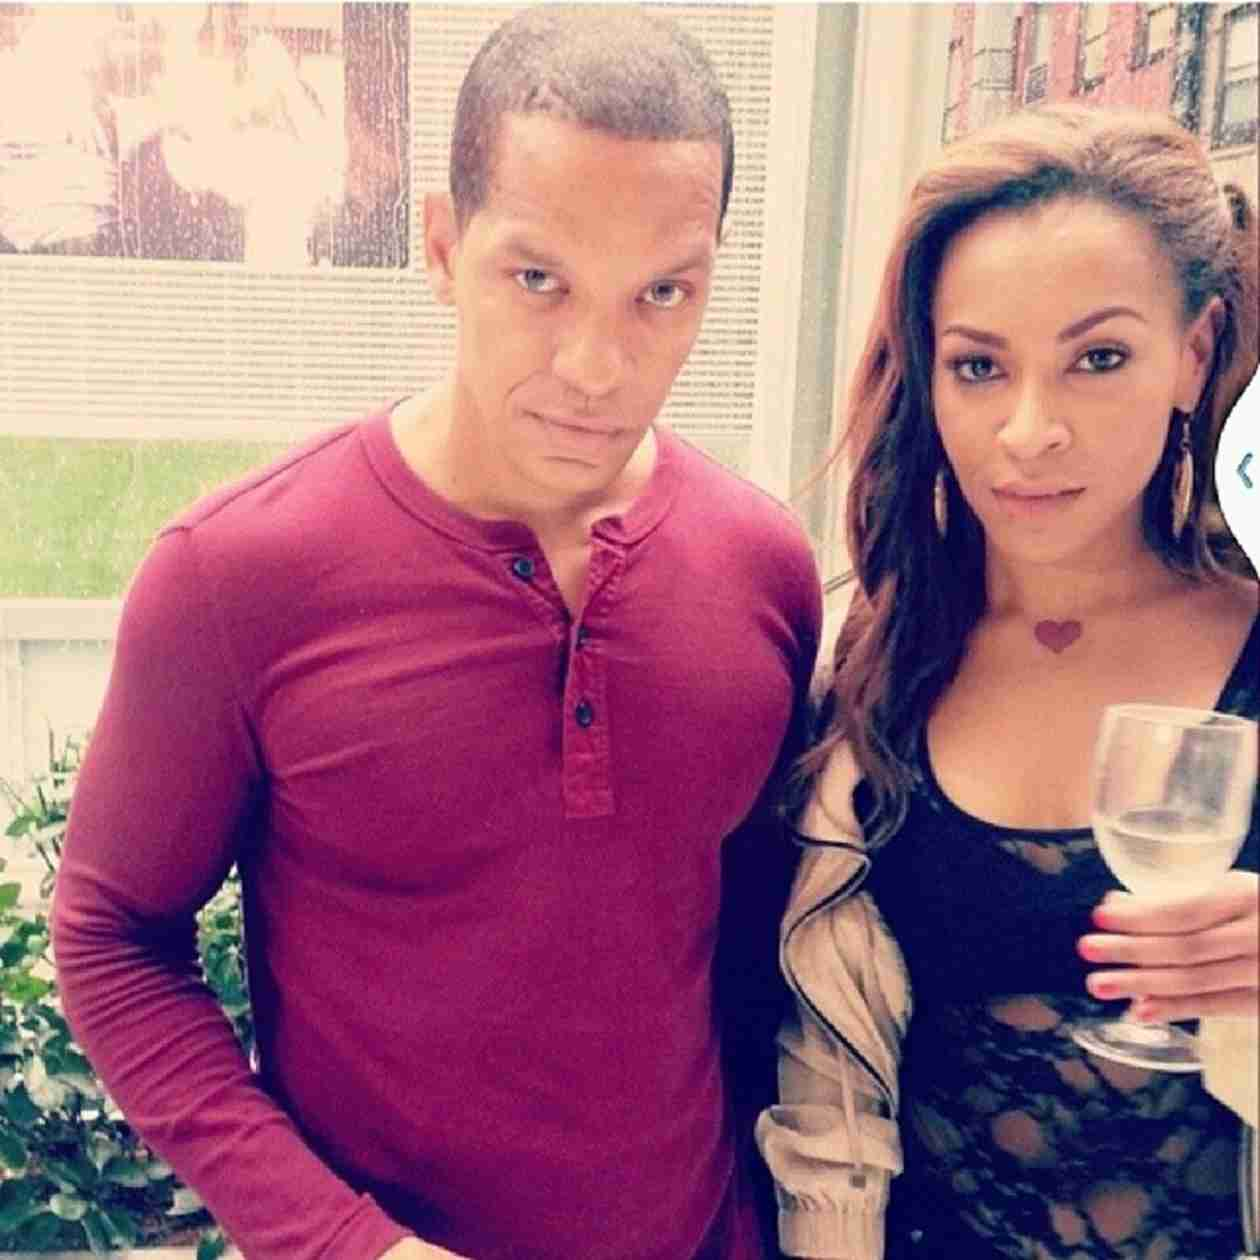 Amina Buddafly Shares Intimate Pregnancy Pic With Peter Gunz! (PHOTO)